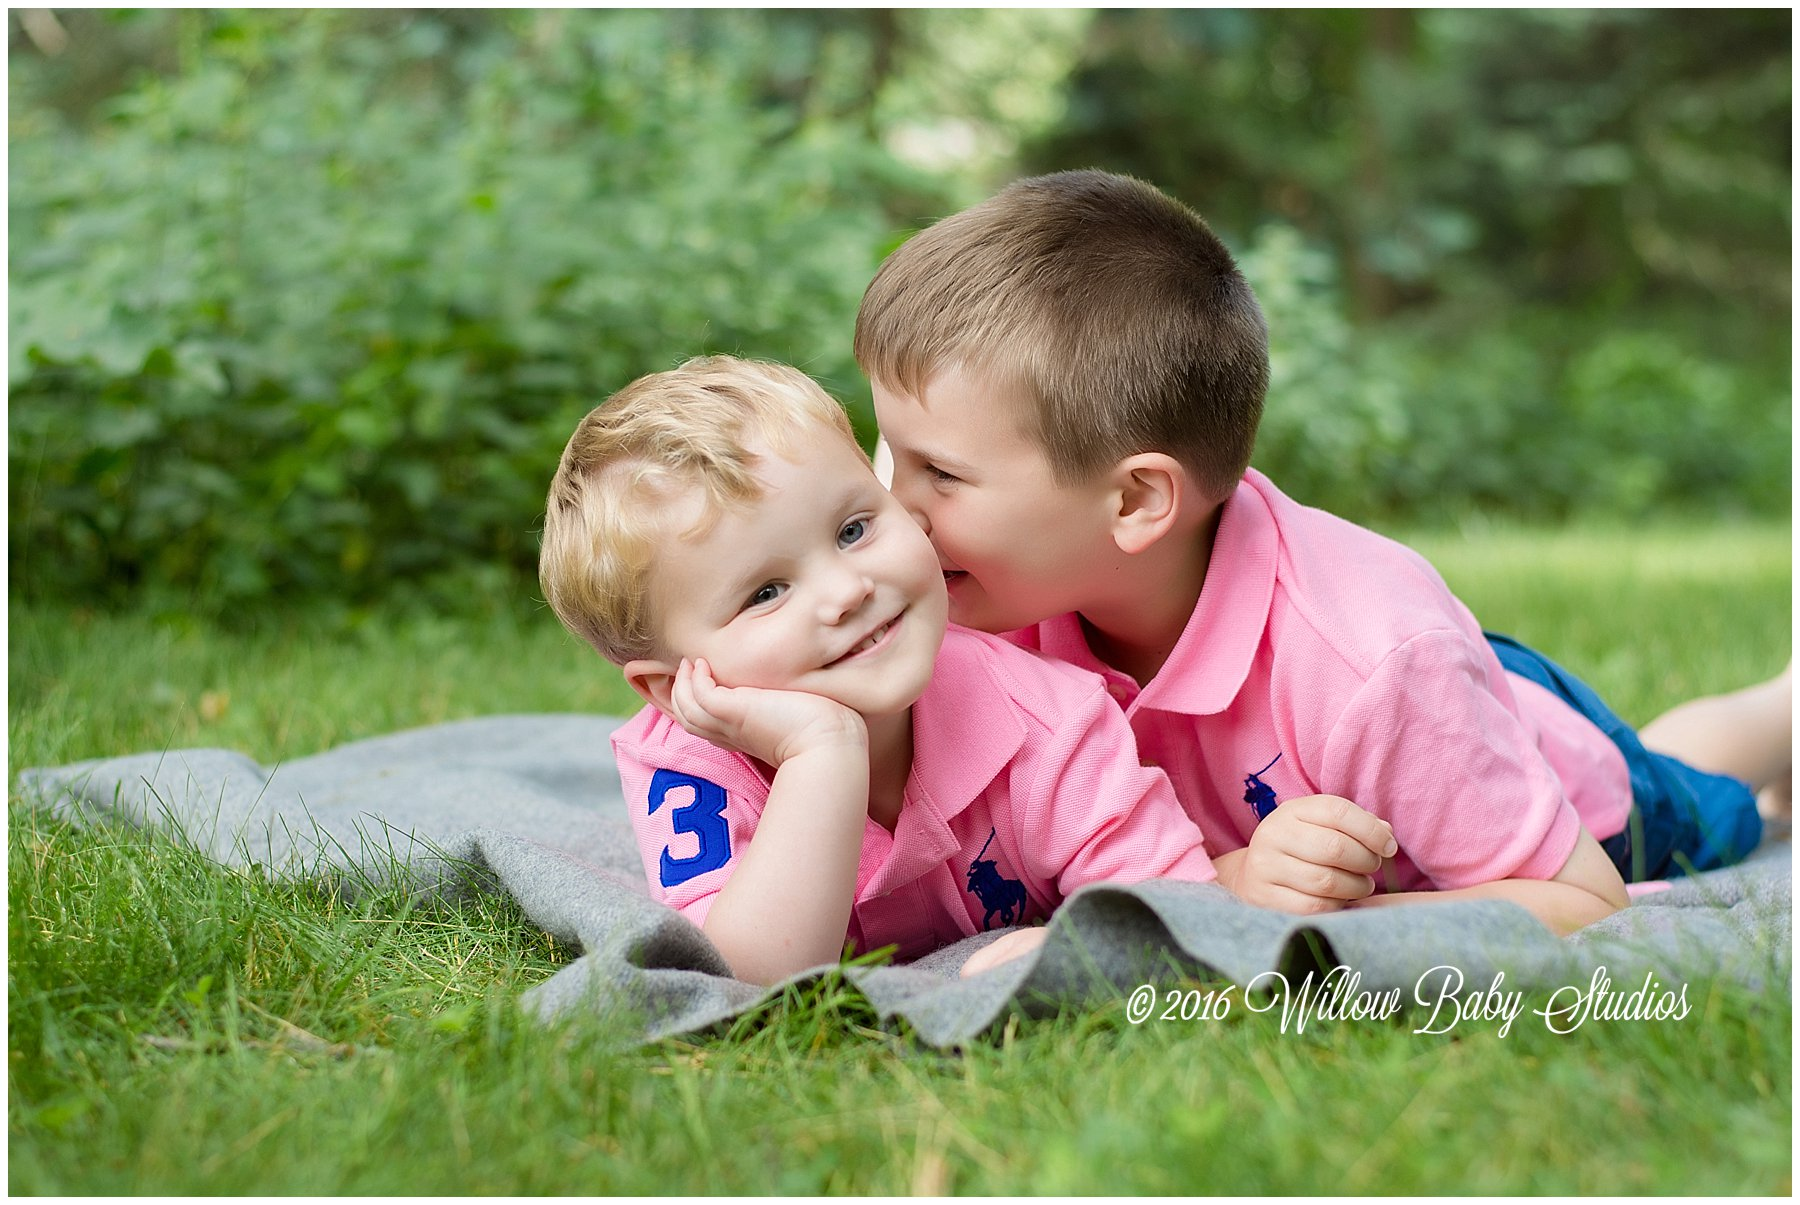 Young-brothers-laying-on-grass-telling-secrets